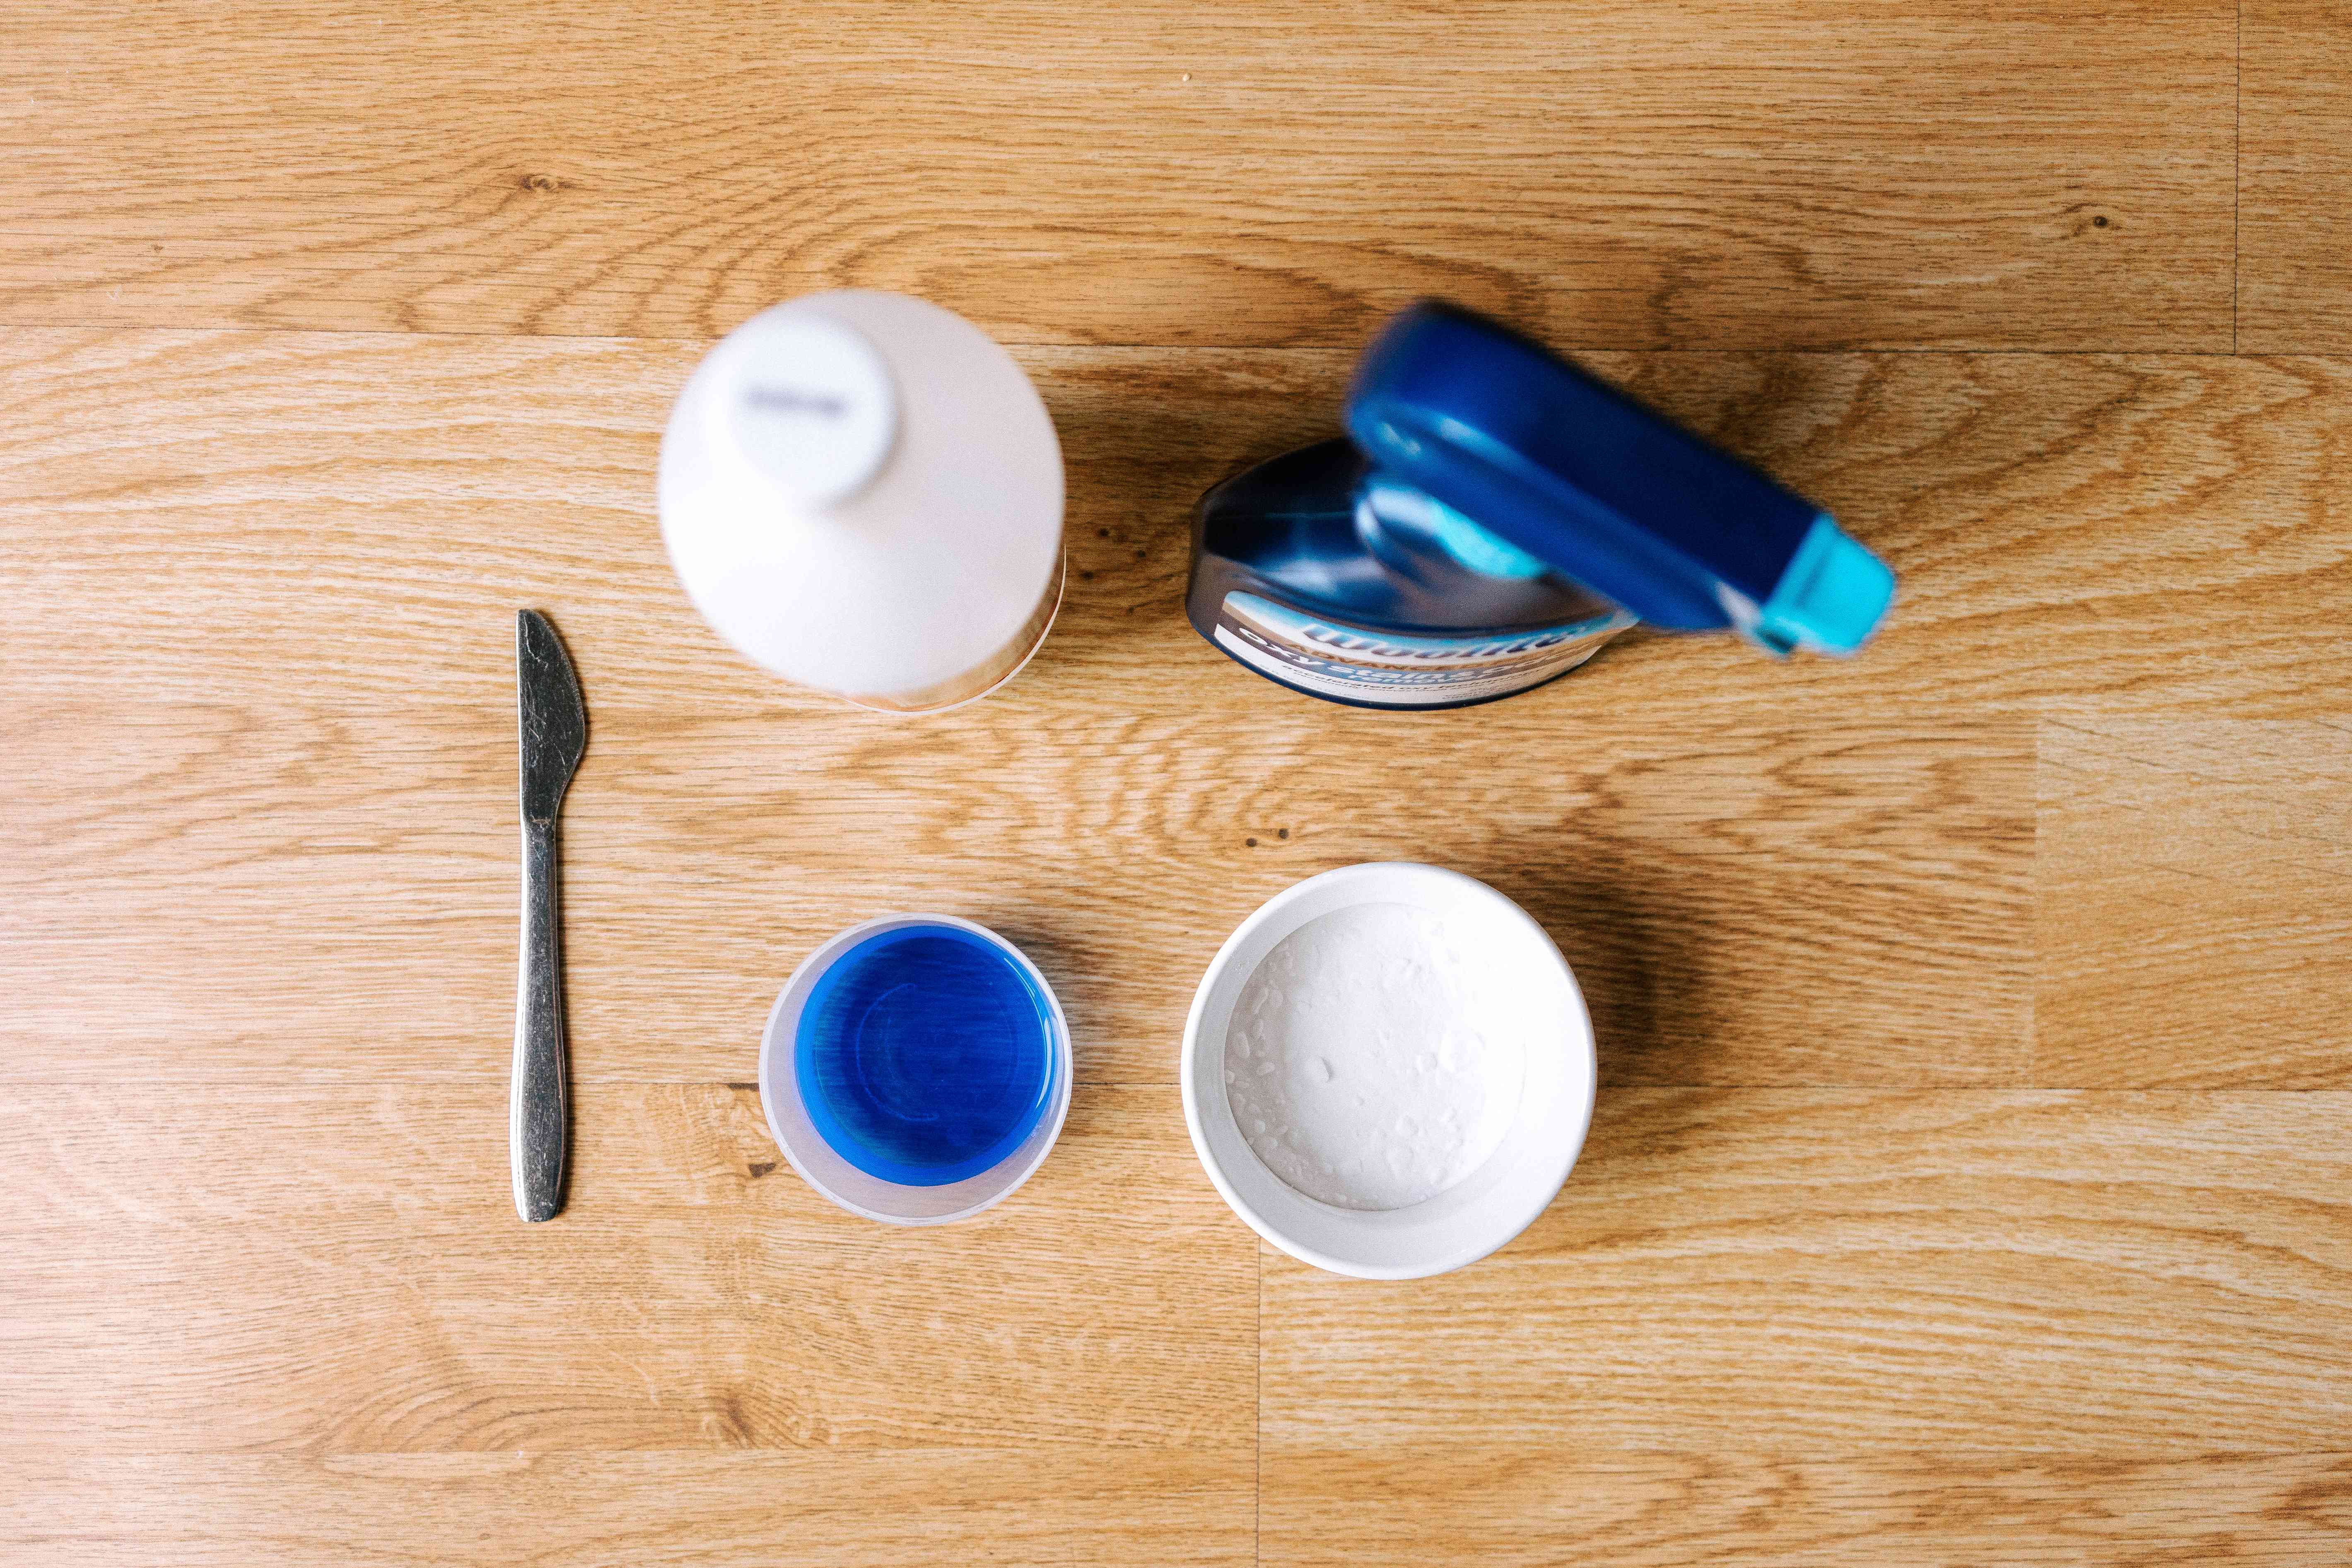 items for removing dried fruit stains